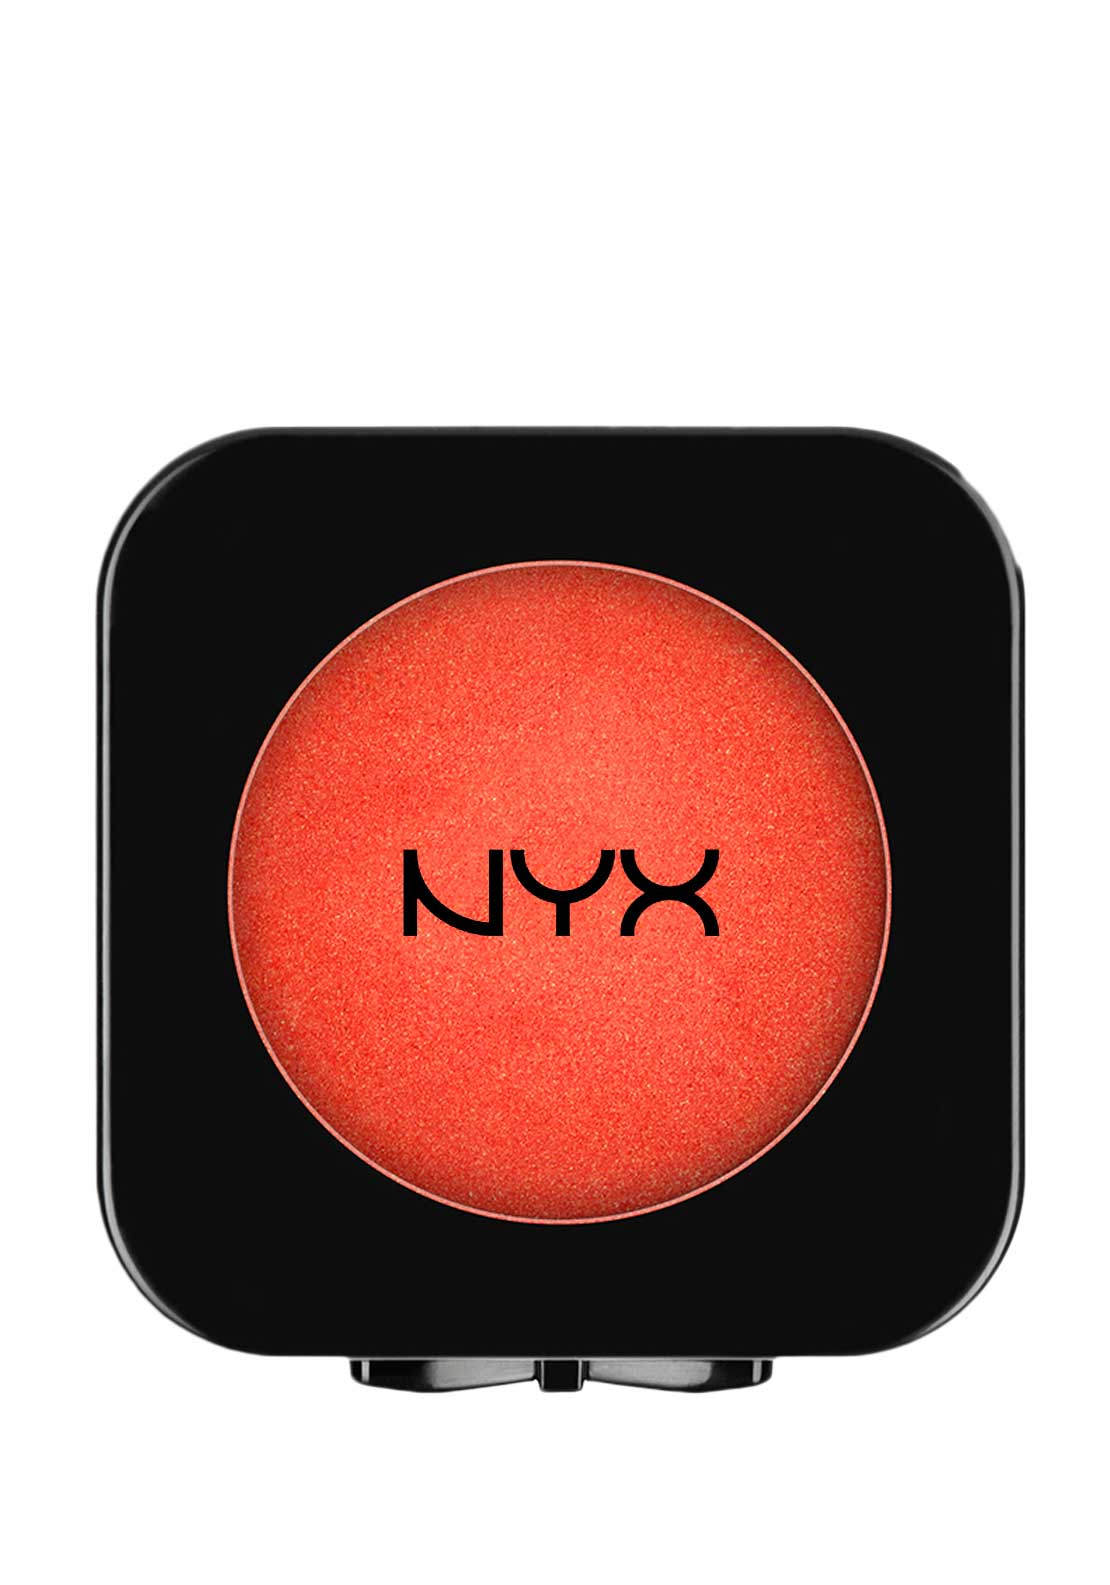 NYX Make Up HD Blusher, Summer, 05